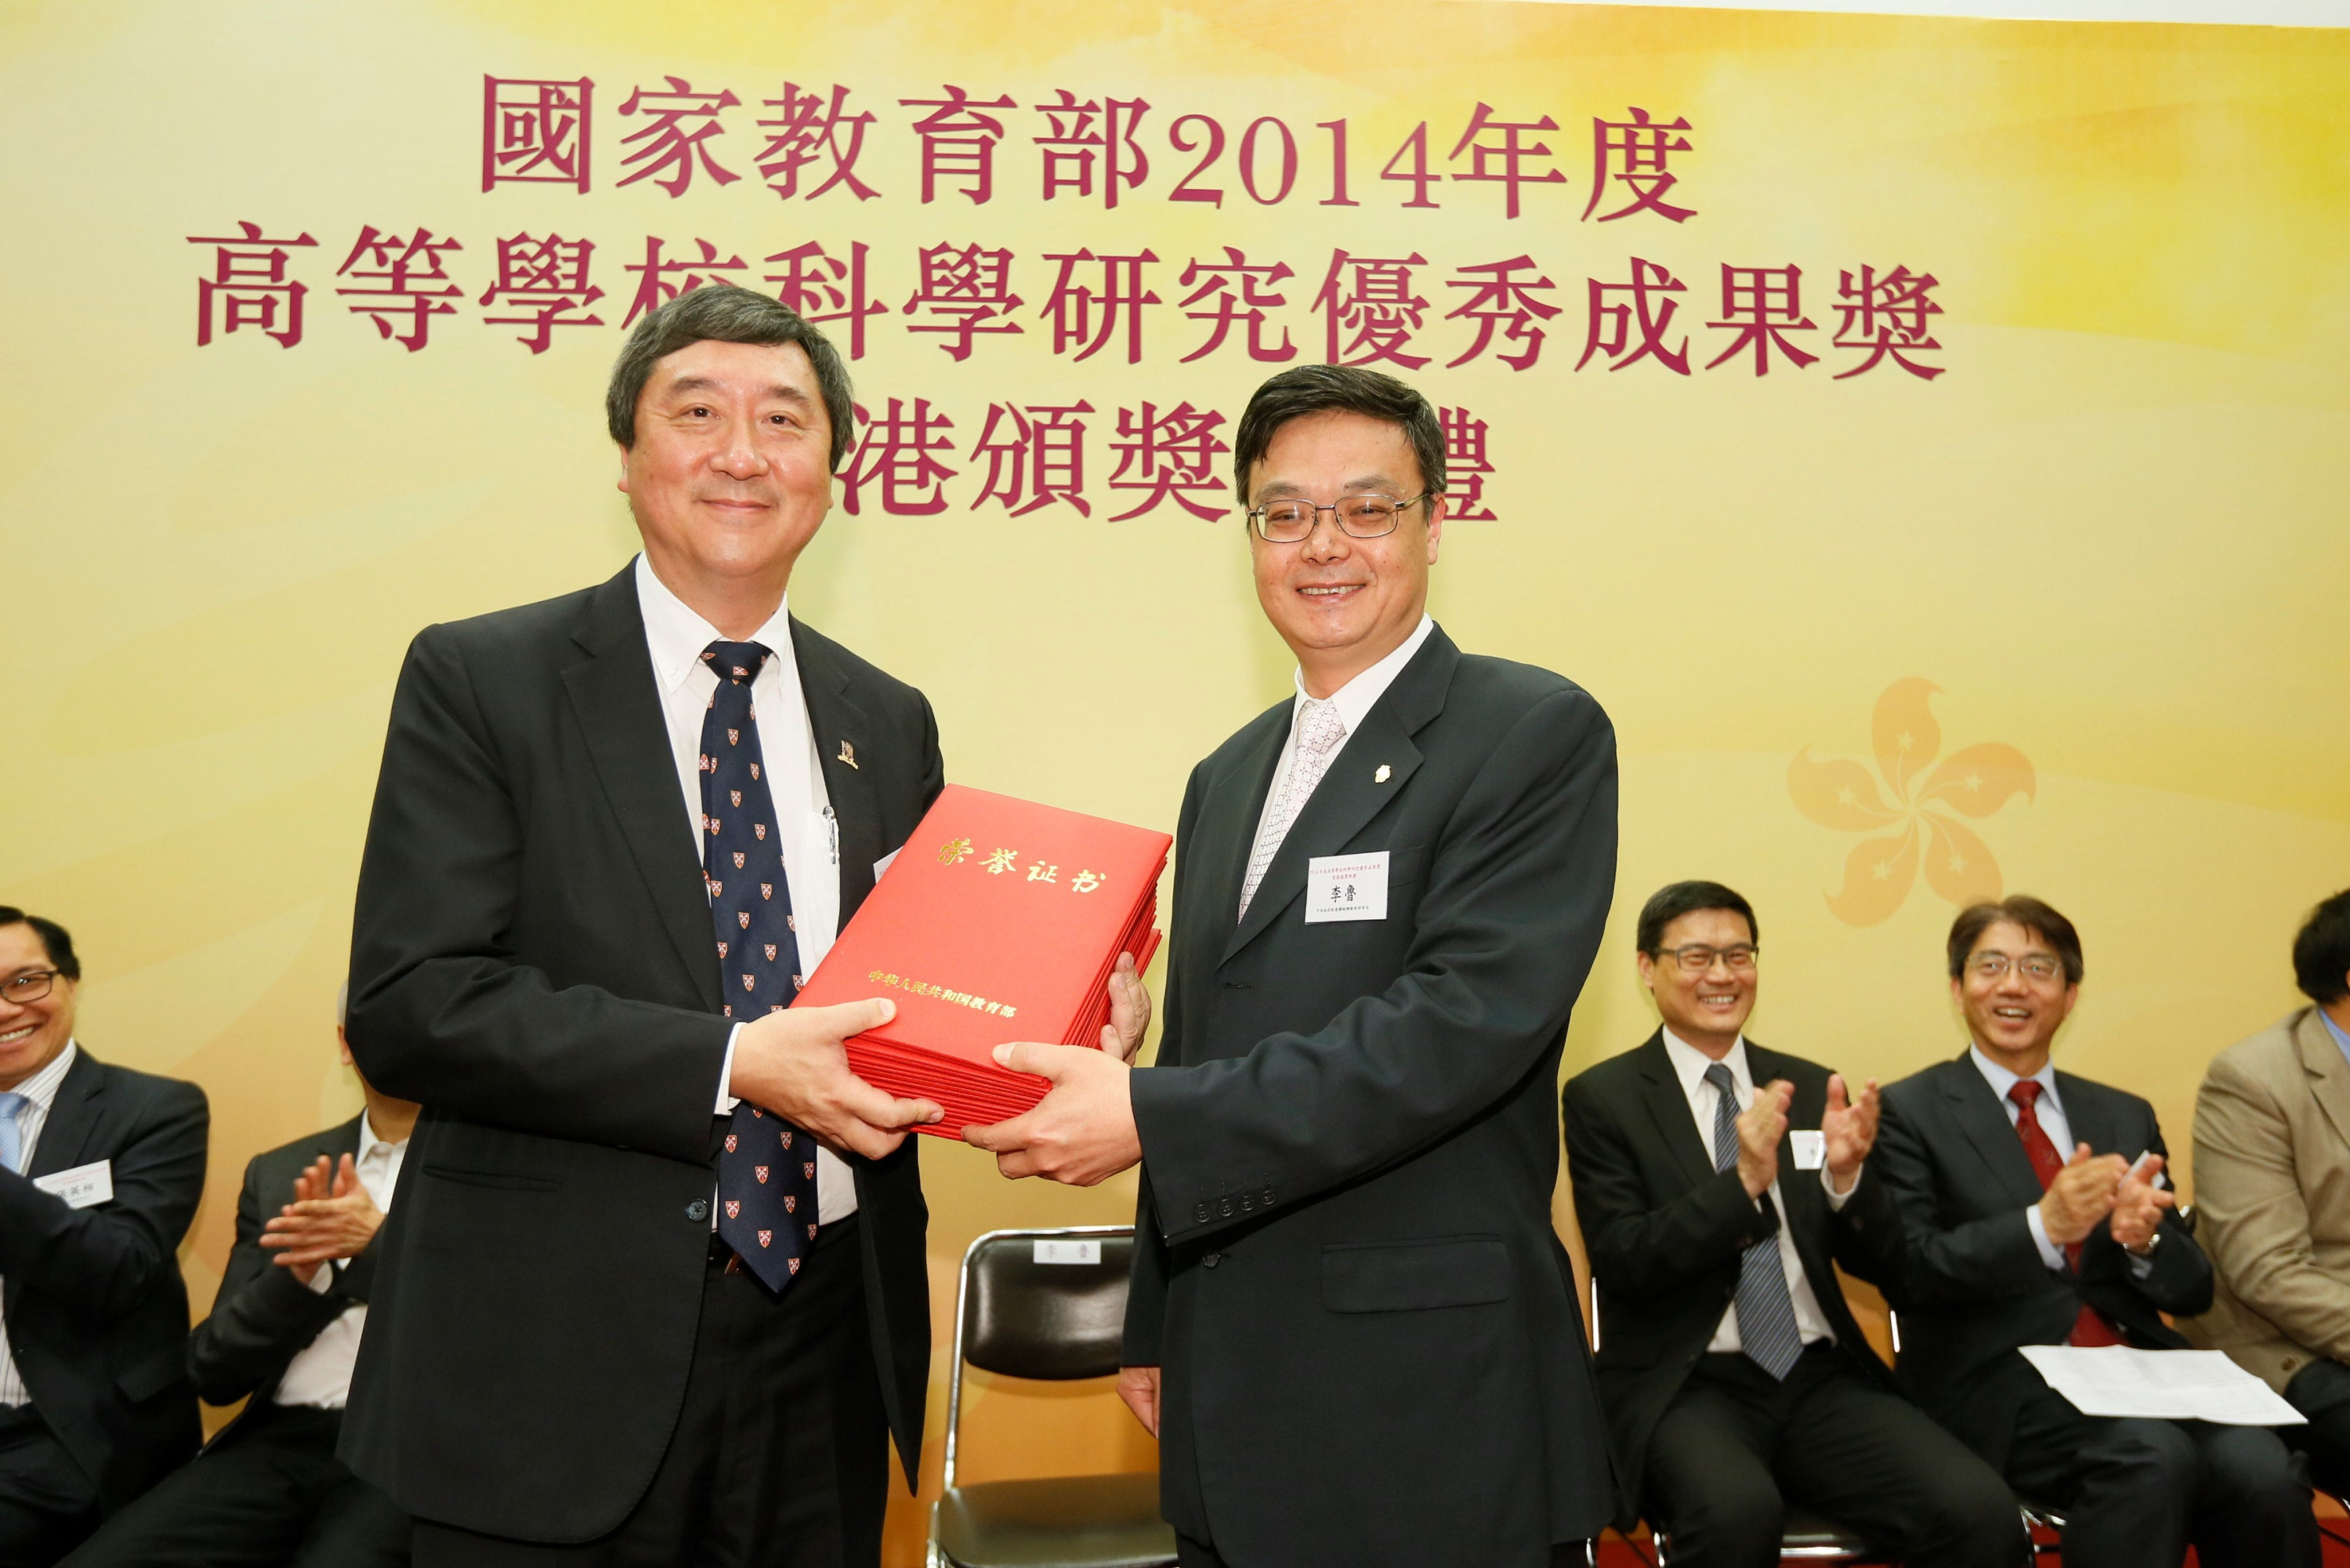 CUHK receives 8 Higher Education Outstanding Scientific Research Output Awards (Science and Technology) from MoE in 2014. Prof. Joseph Sung, Vice-Chancellor of CUHK (left), represents the University to receive the award certificates from Prof. Lu Li, Director General of the Education, Science & Technology Department of the Liaison Office of the Central People's Government in HKSAR.